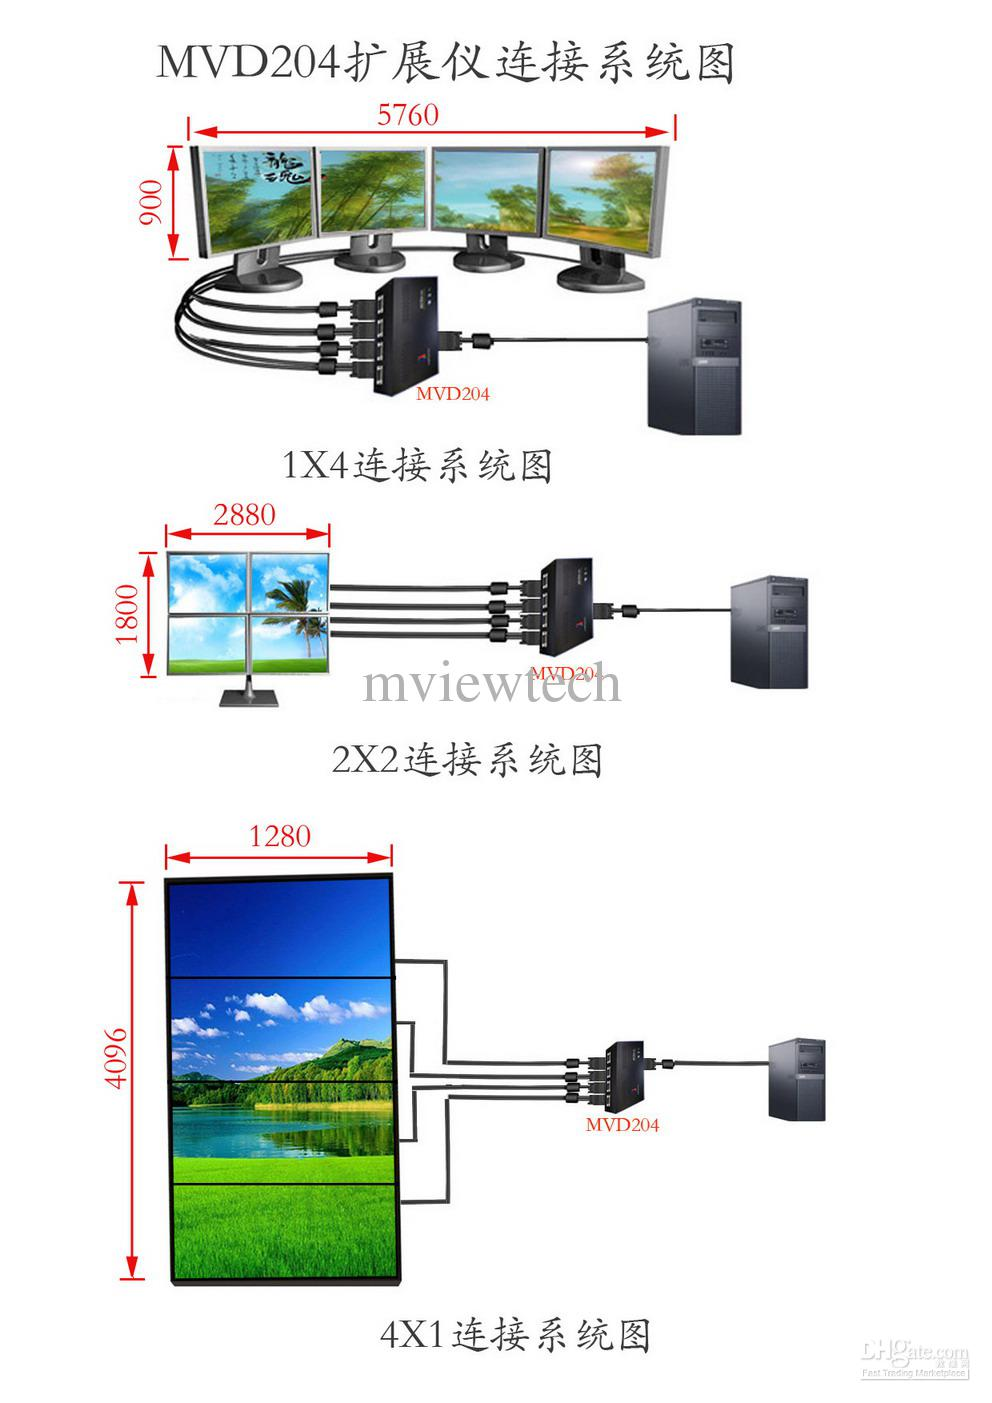 hight resolution of mvd204 four screen dual link dvi multi display expansion module pc cables and connectors computer cables and connectors chart from mviewtech